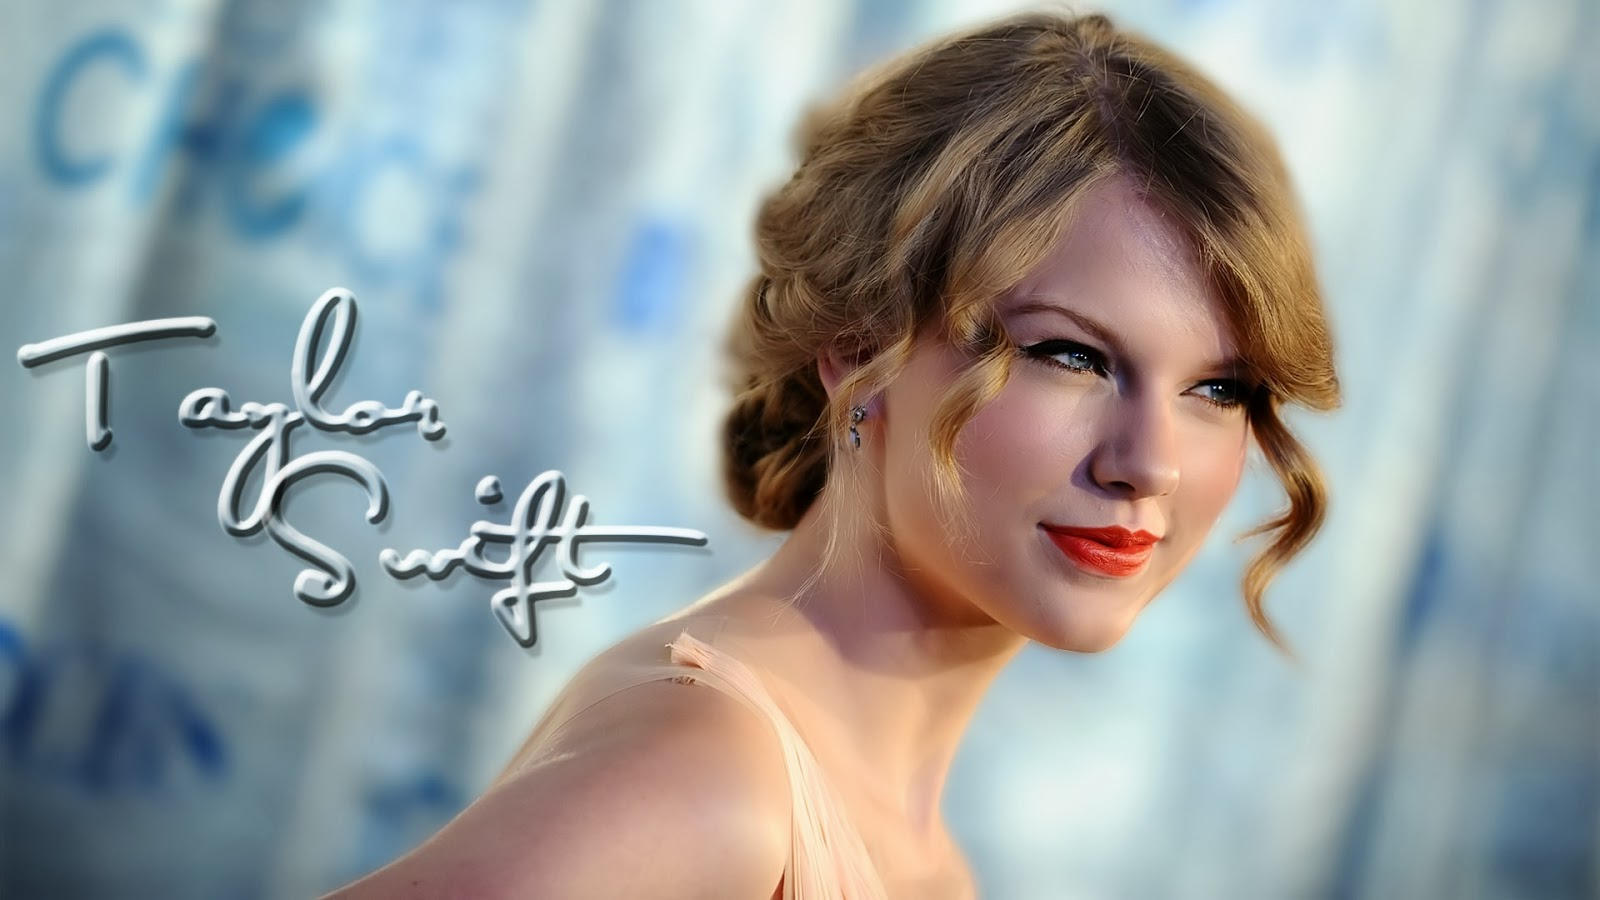 WallPapers Download 1080 Hd Taylor Swift Wallpapers 1600x900